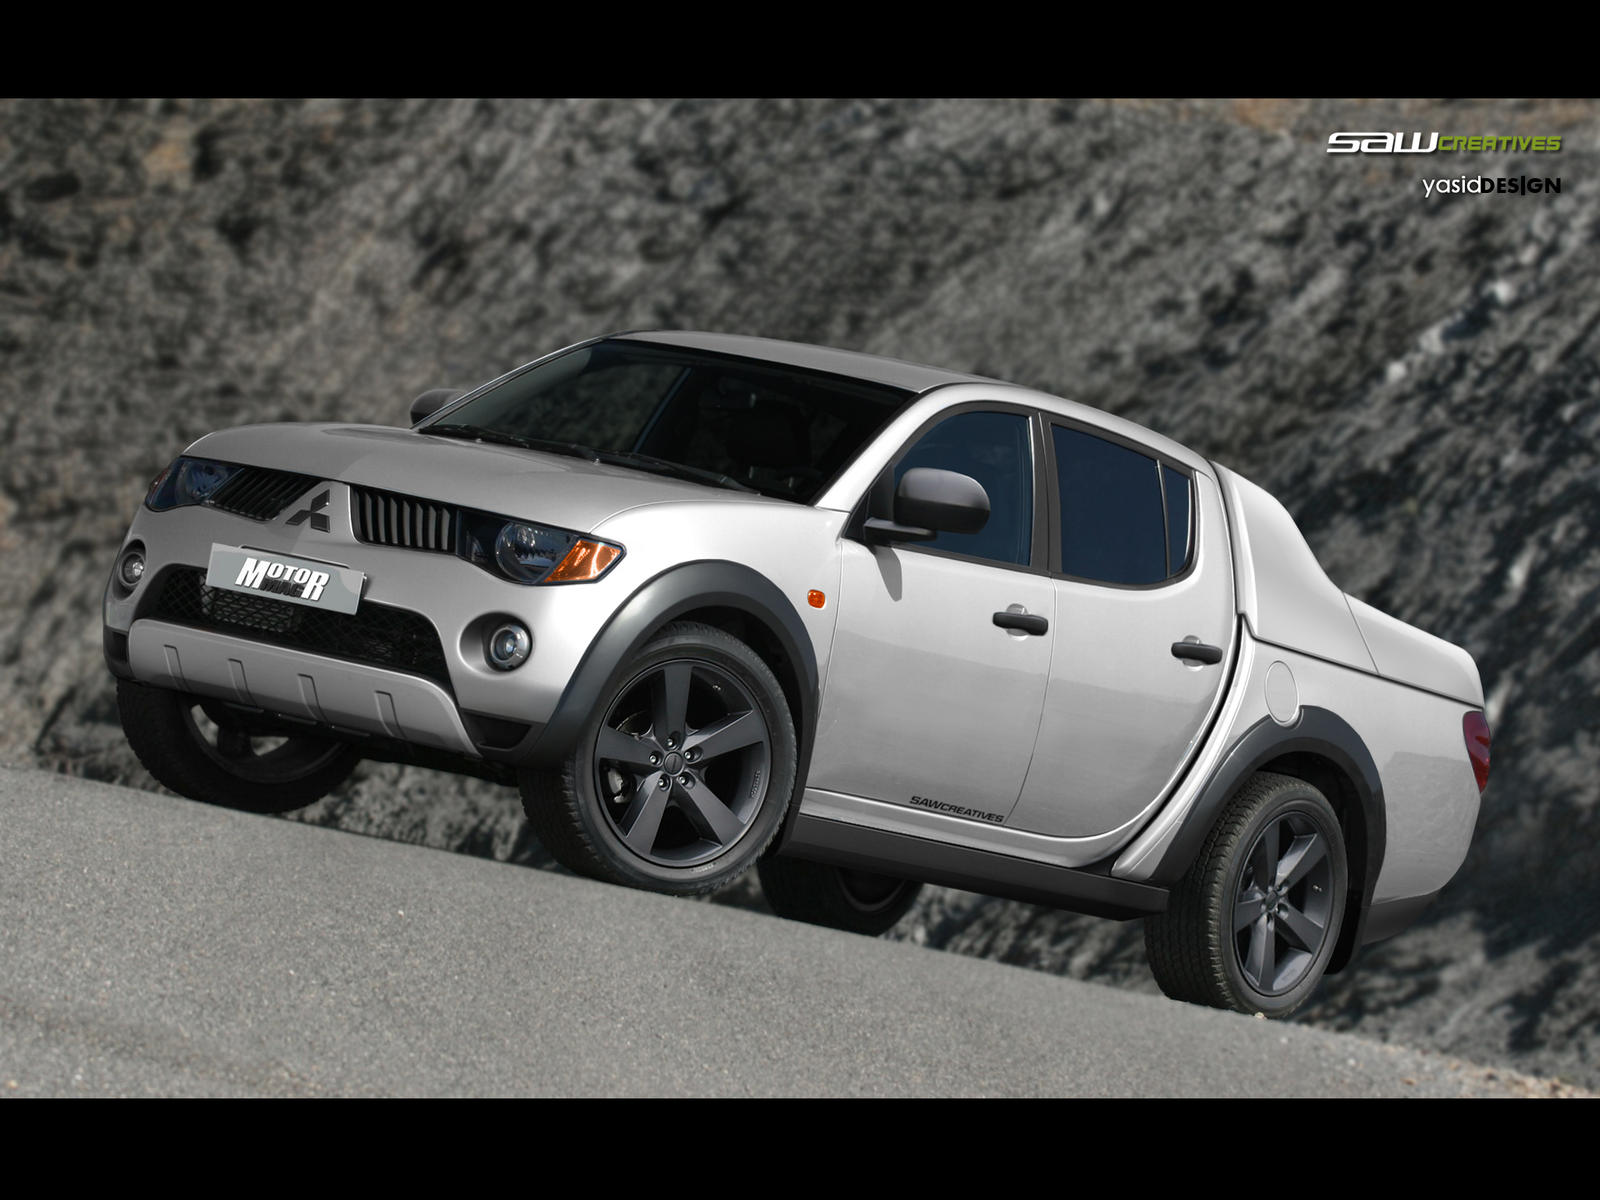 Mitsubishi L200 Frontview By Yasiddesign On Deviantart